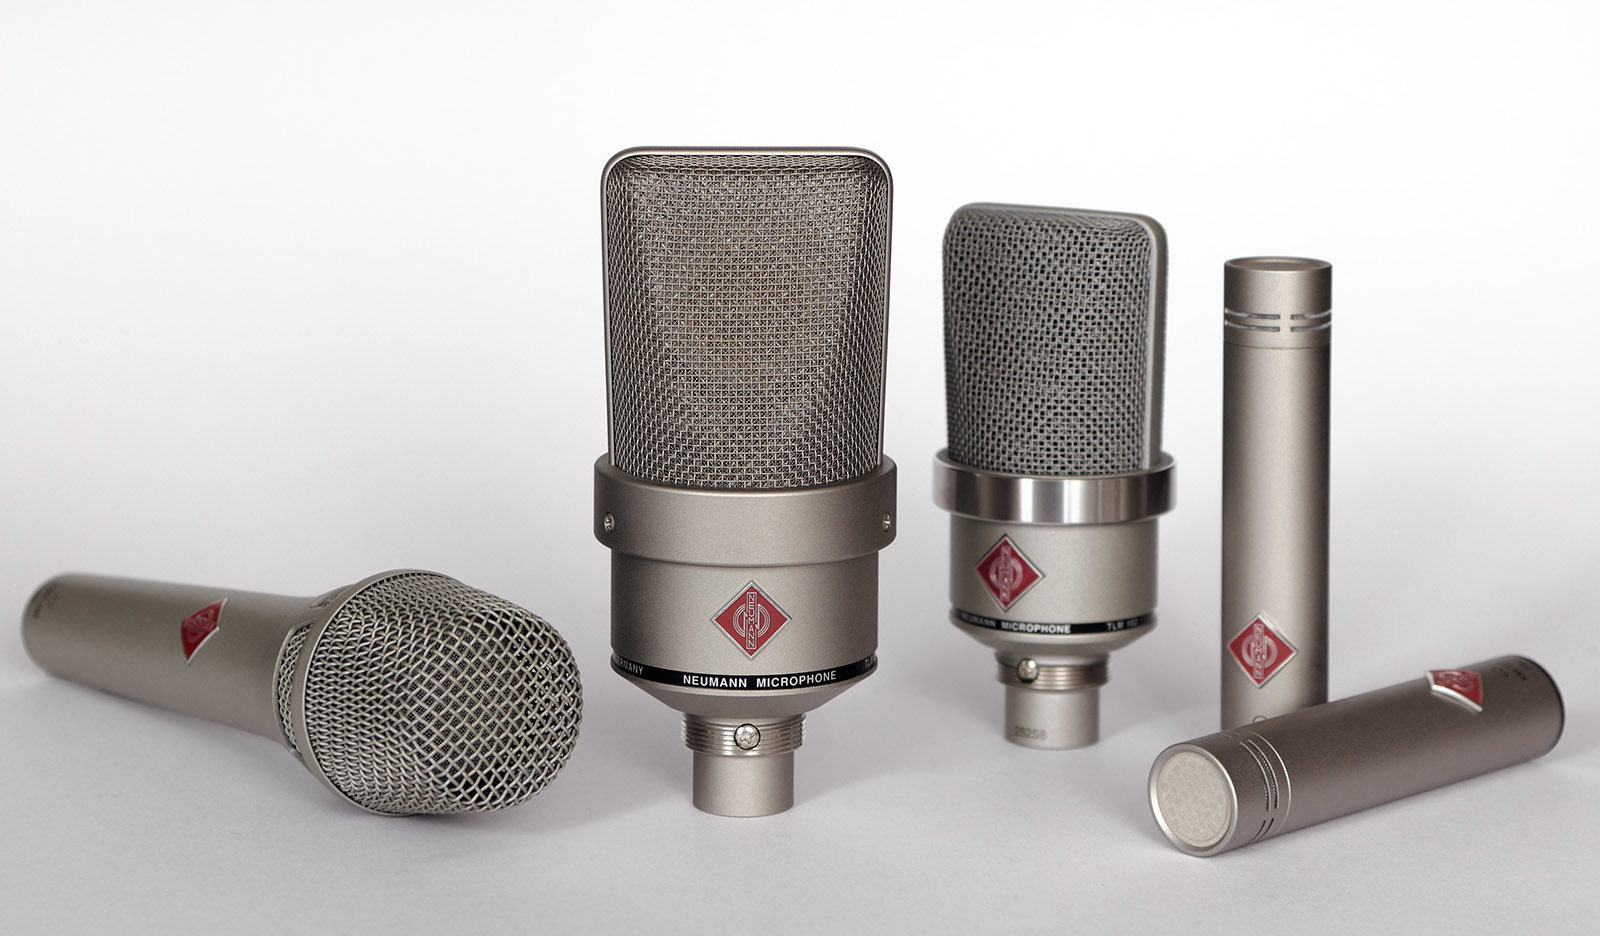 Microphone Basics: What's a Condenser Microphone?